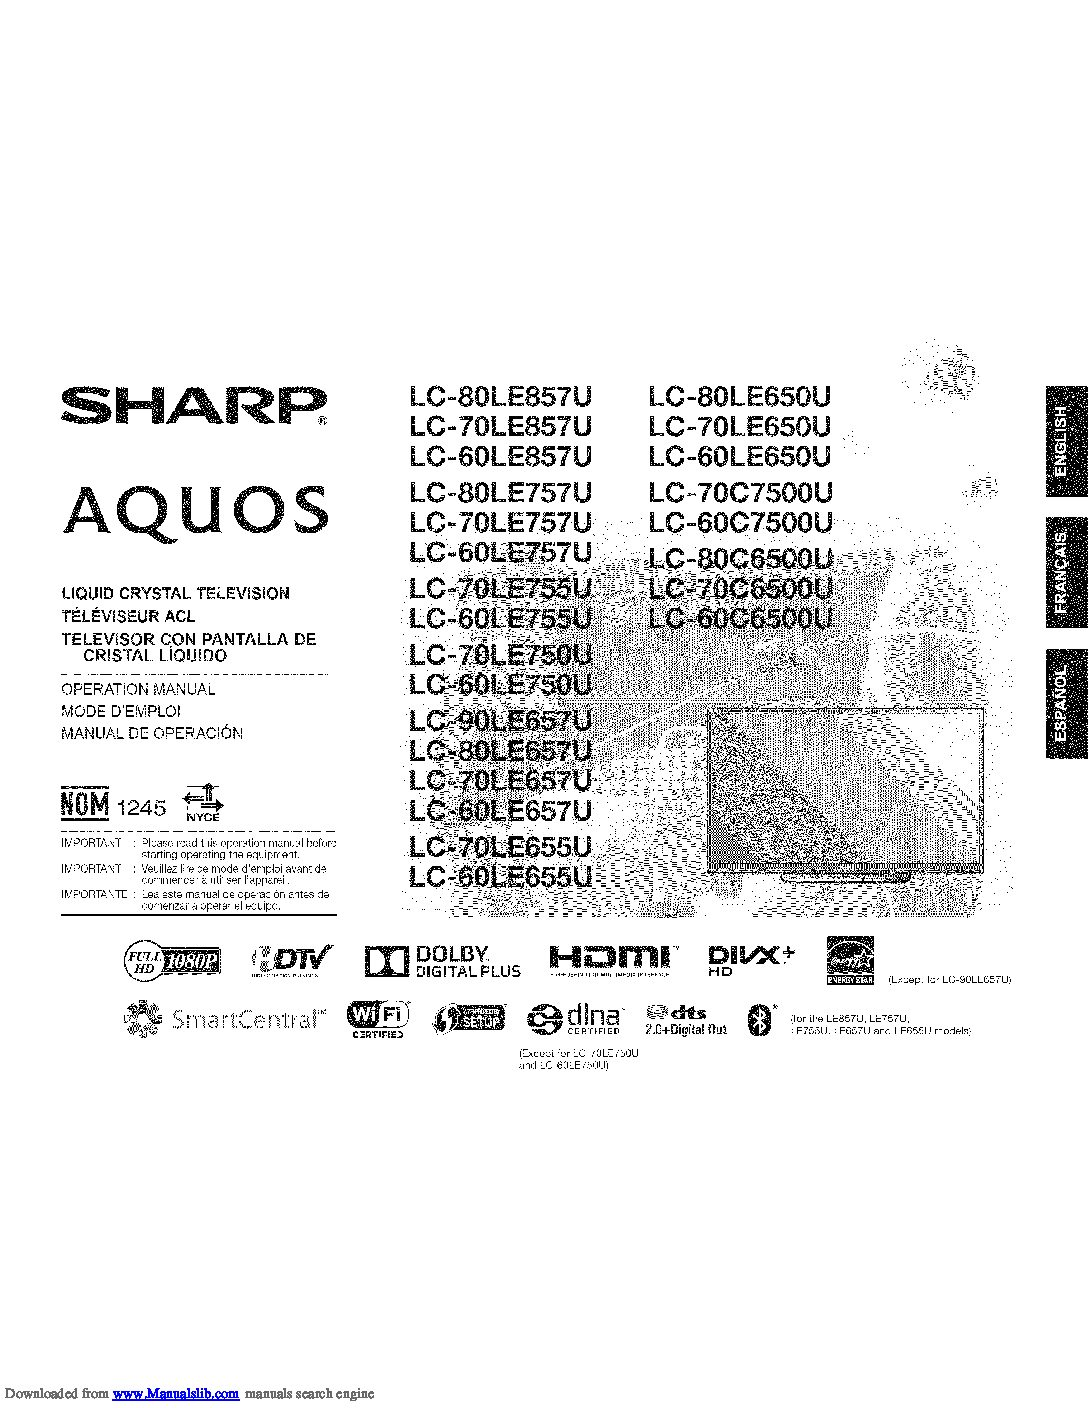 Sharp-LC-70LE650U-AQUOS-Smart-Display-Manual[1] ⋆ A